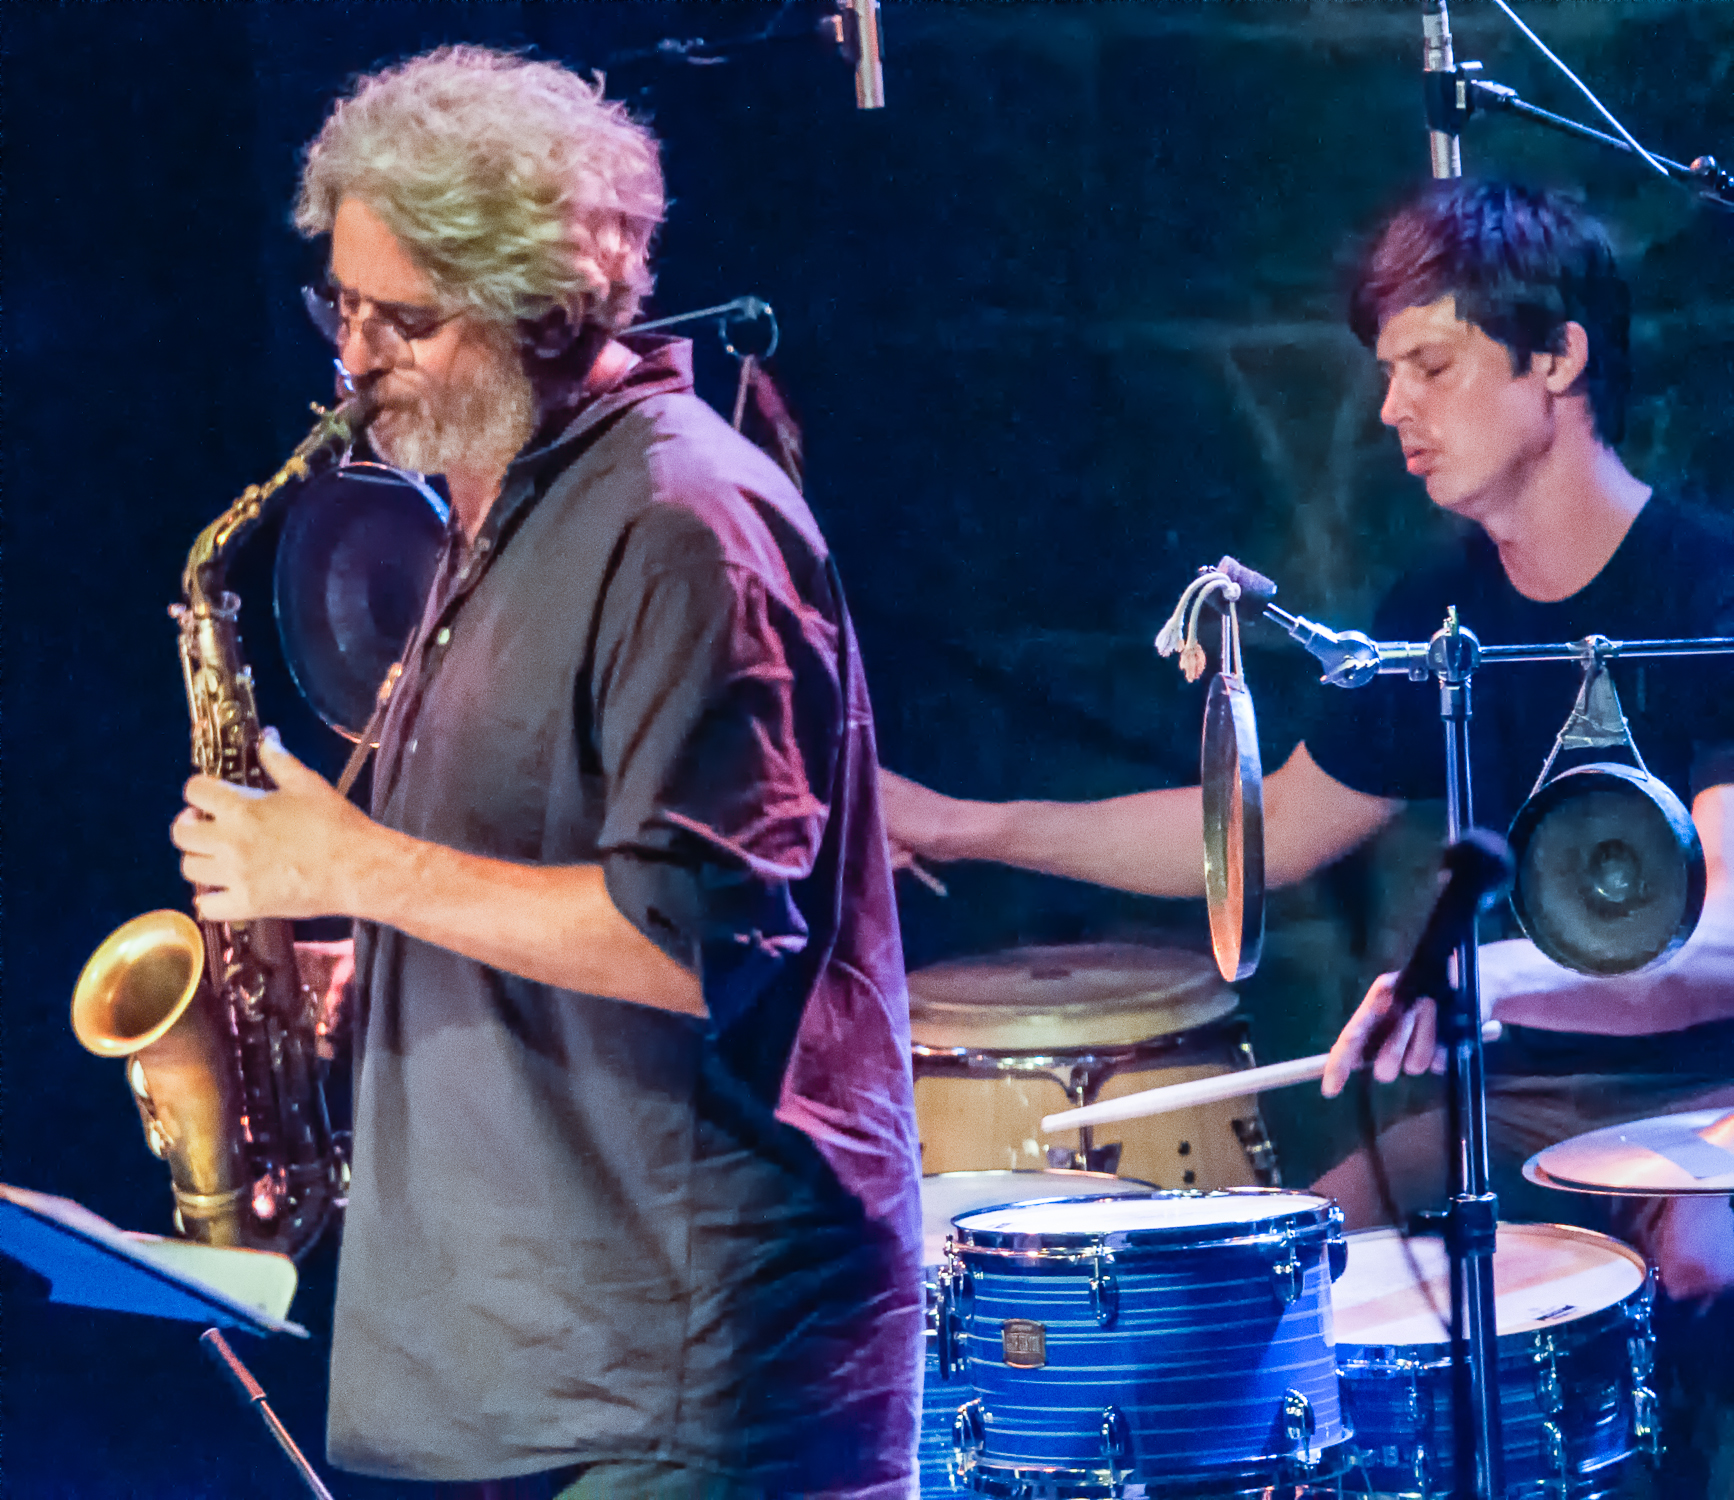 Tim berne and ches smith with snakeoil at the montreal international jazz festival 2013